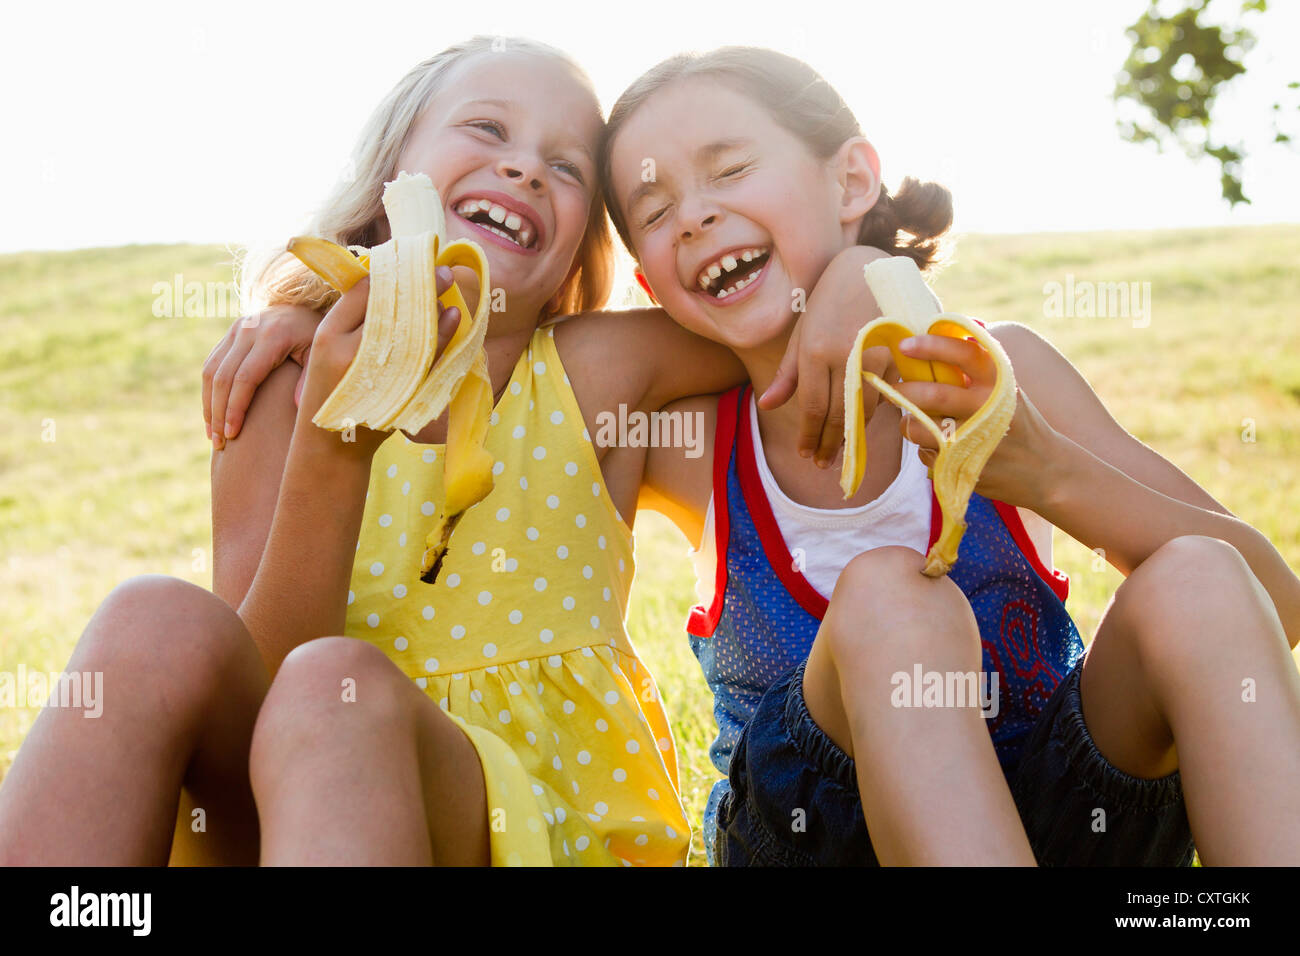 Laughing girls eating bananas outdoors - Stock Image